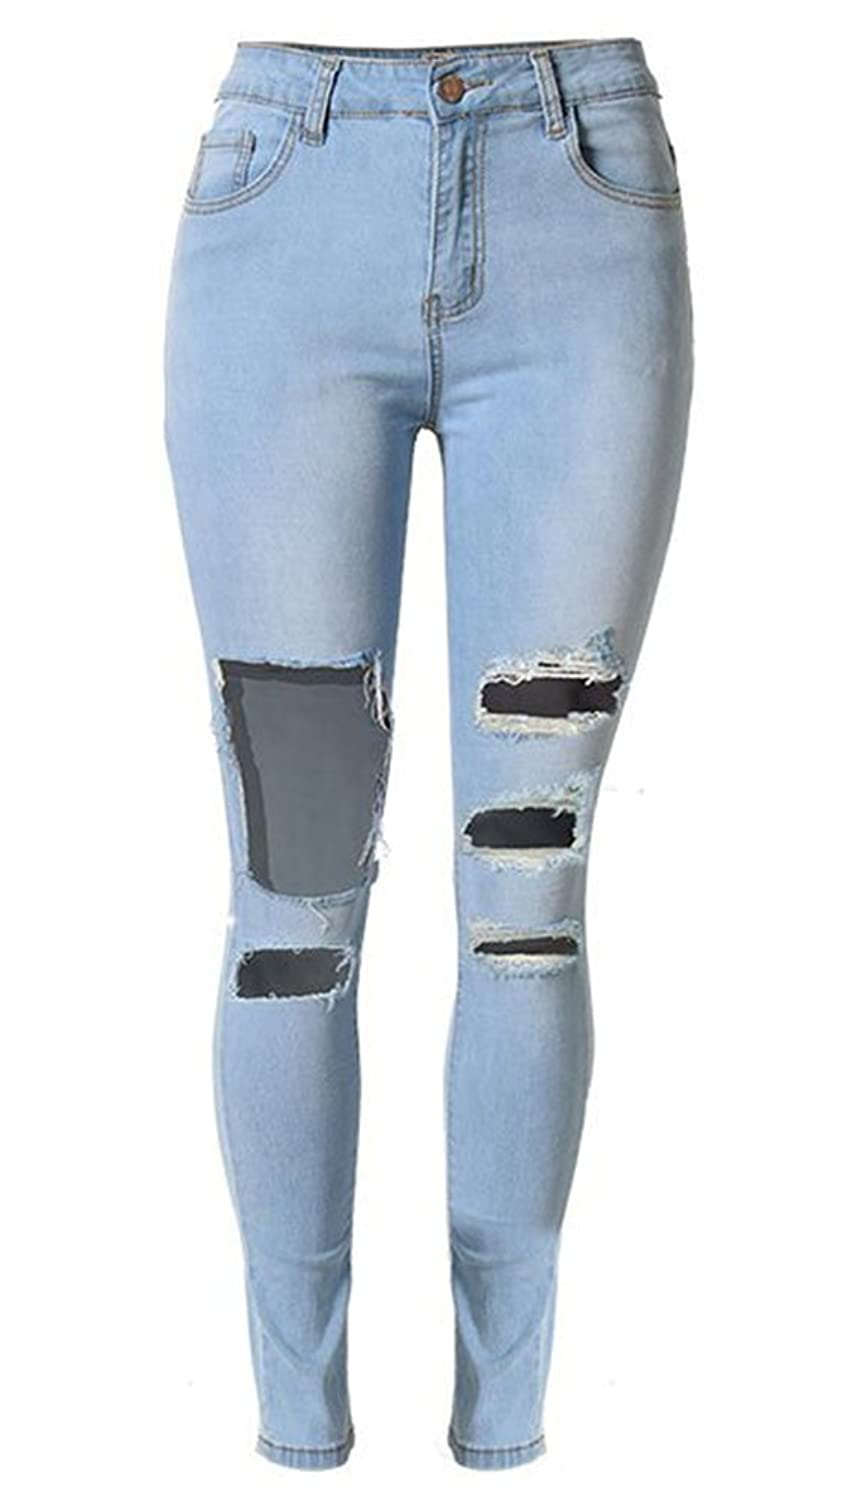 Insun Women's Stretch Cotton Ripped Distressed Skinny Jeans